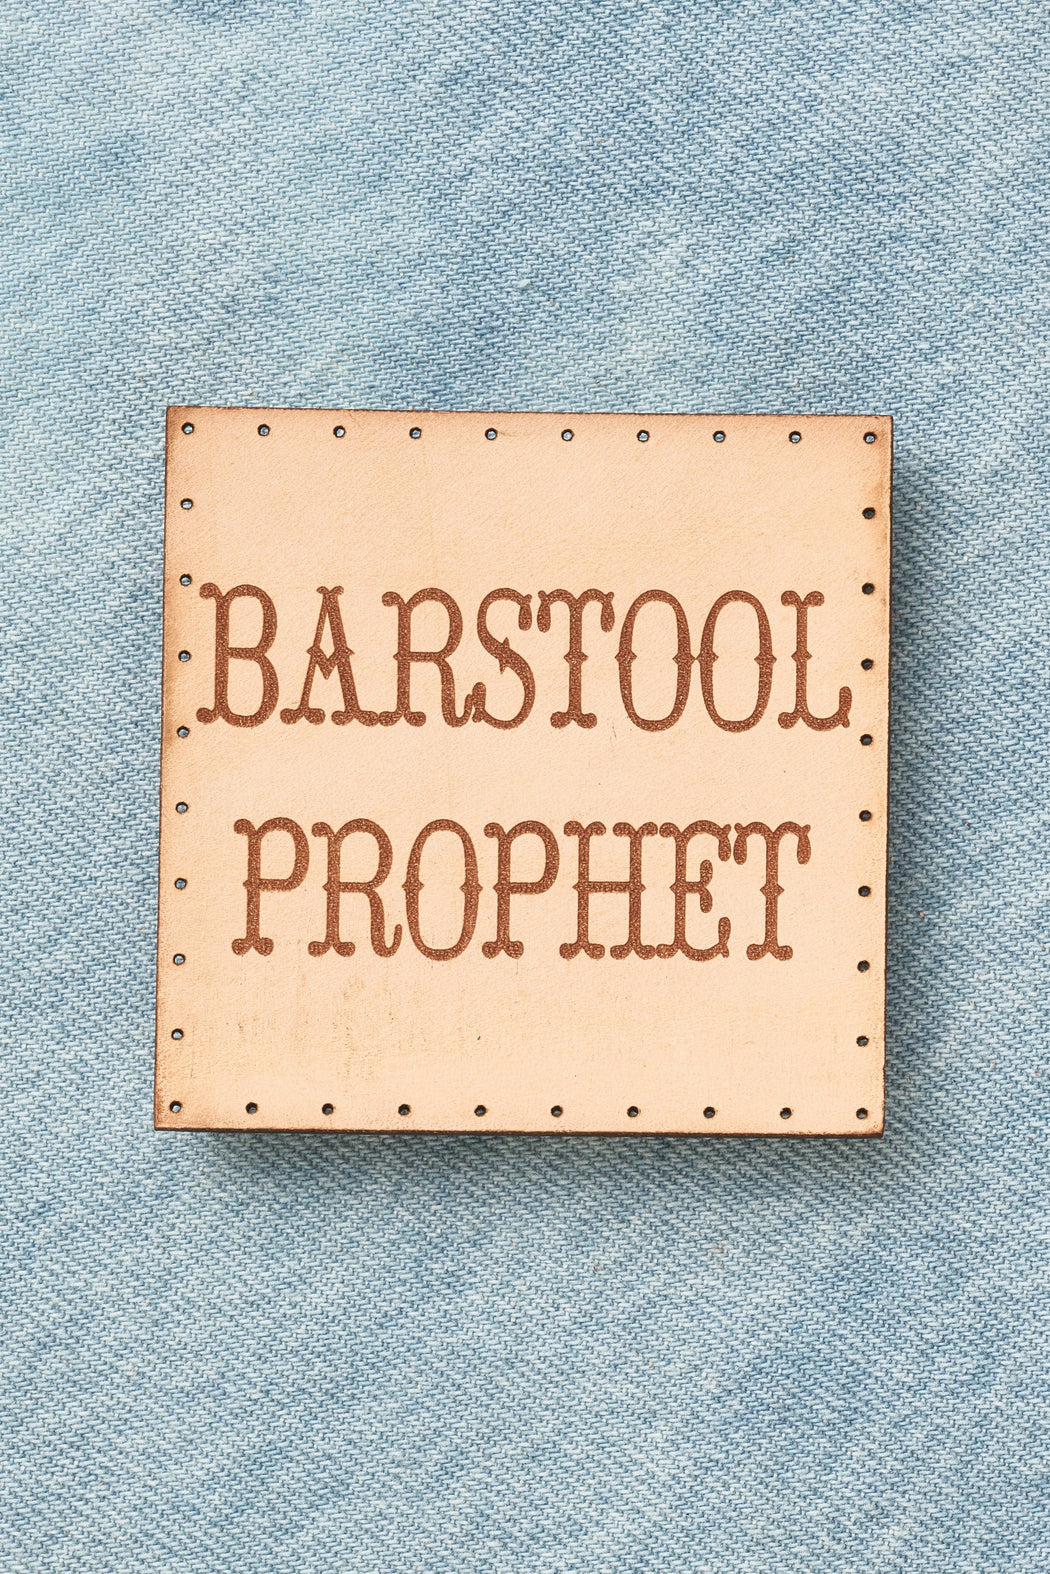 barstool prophet patch